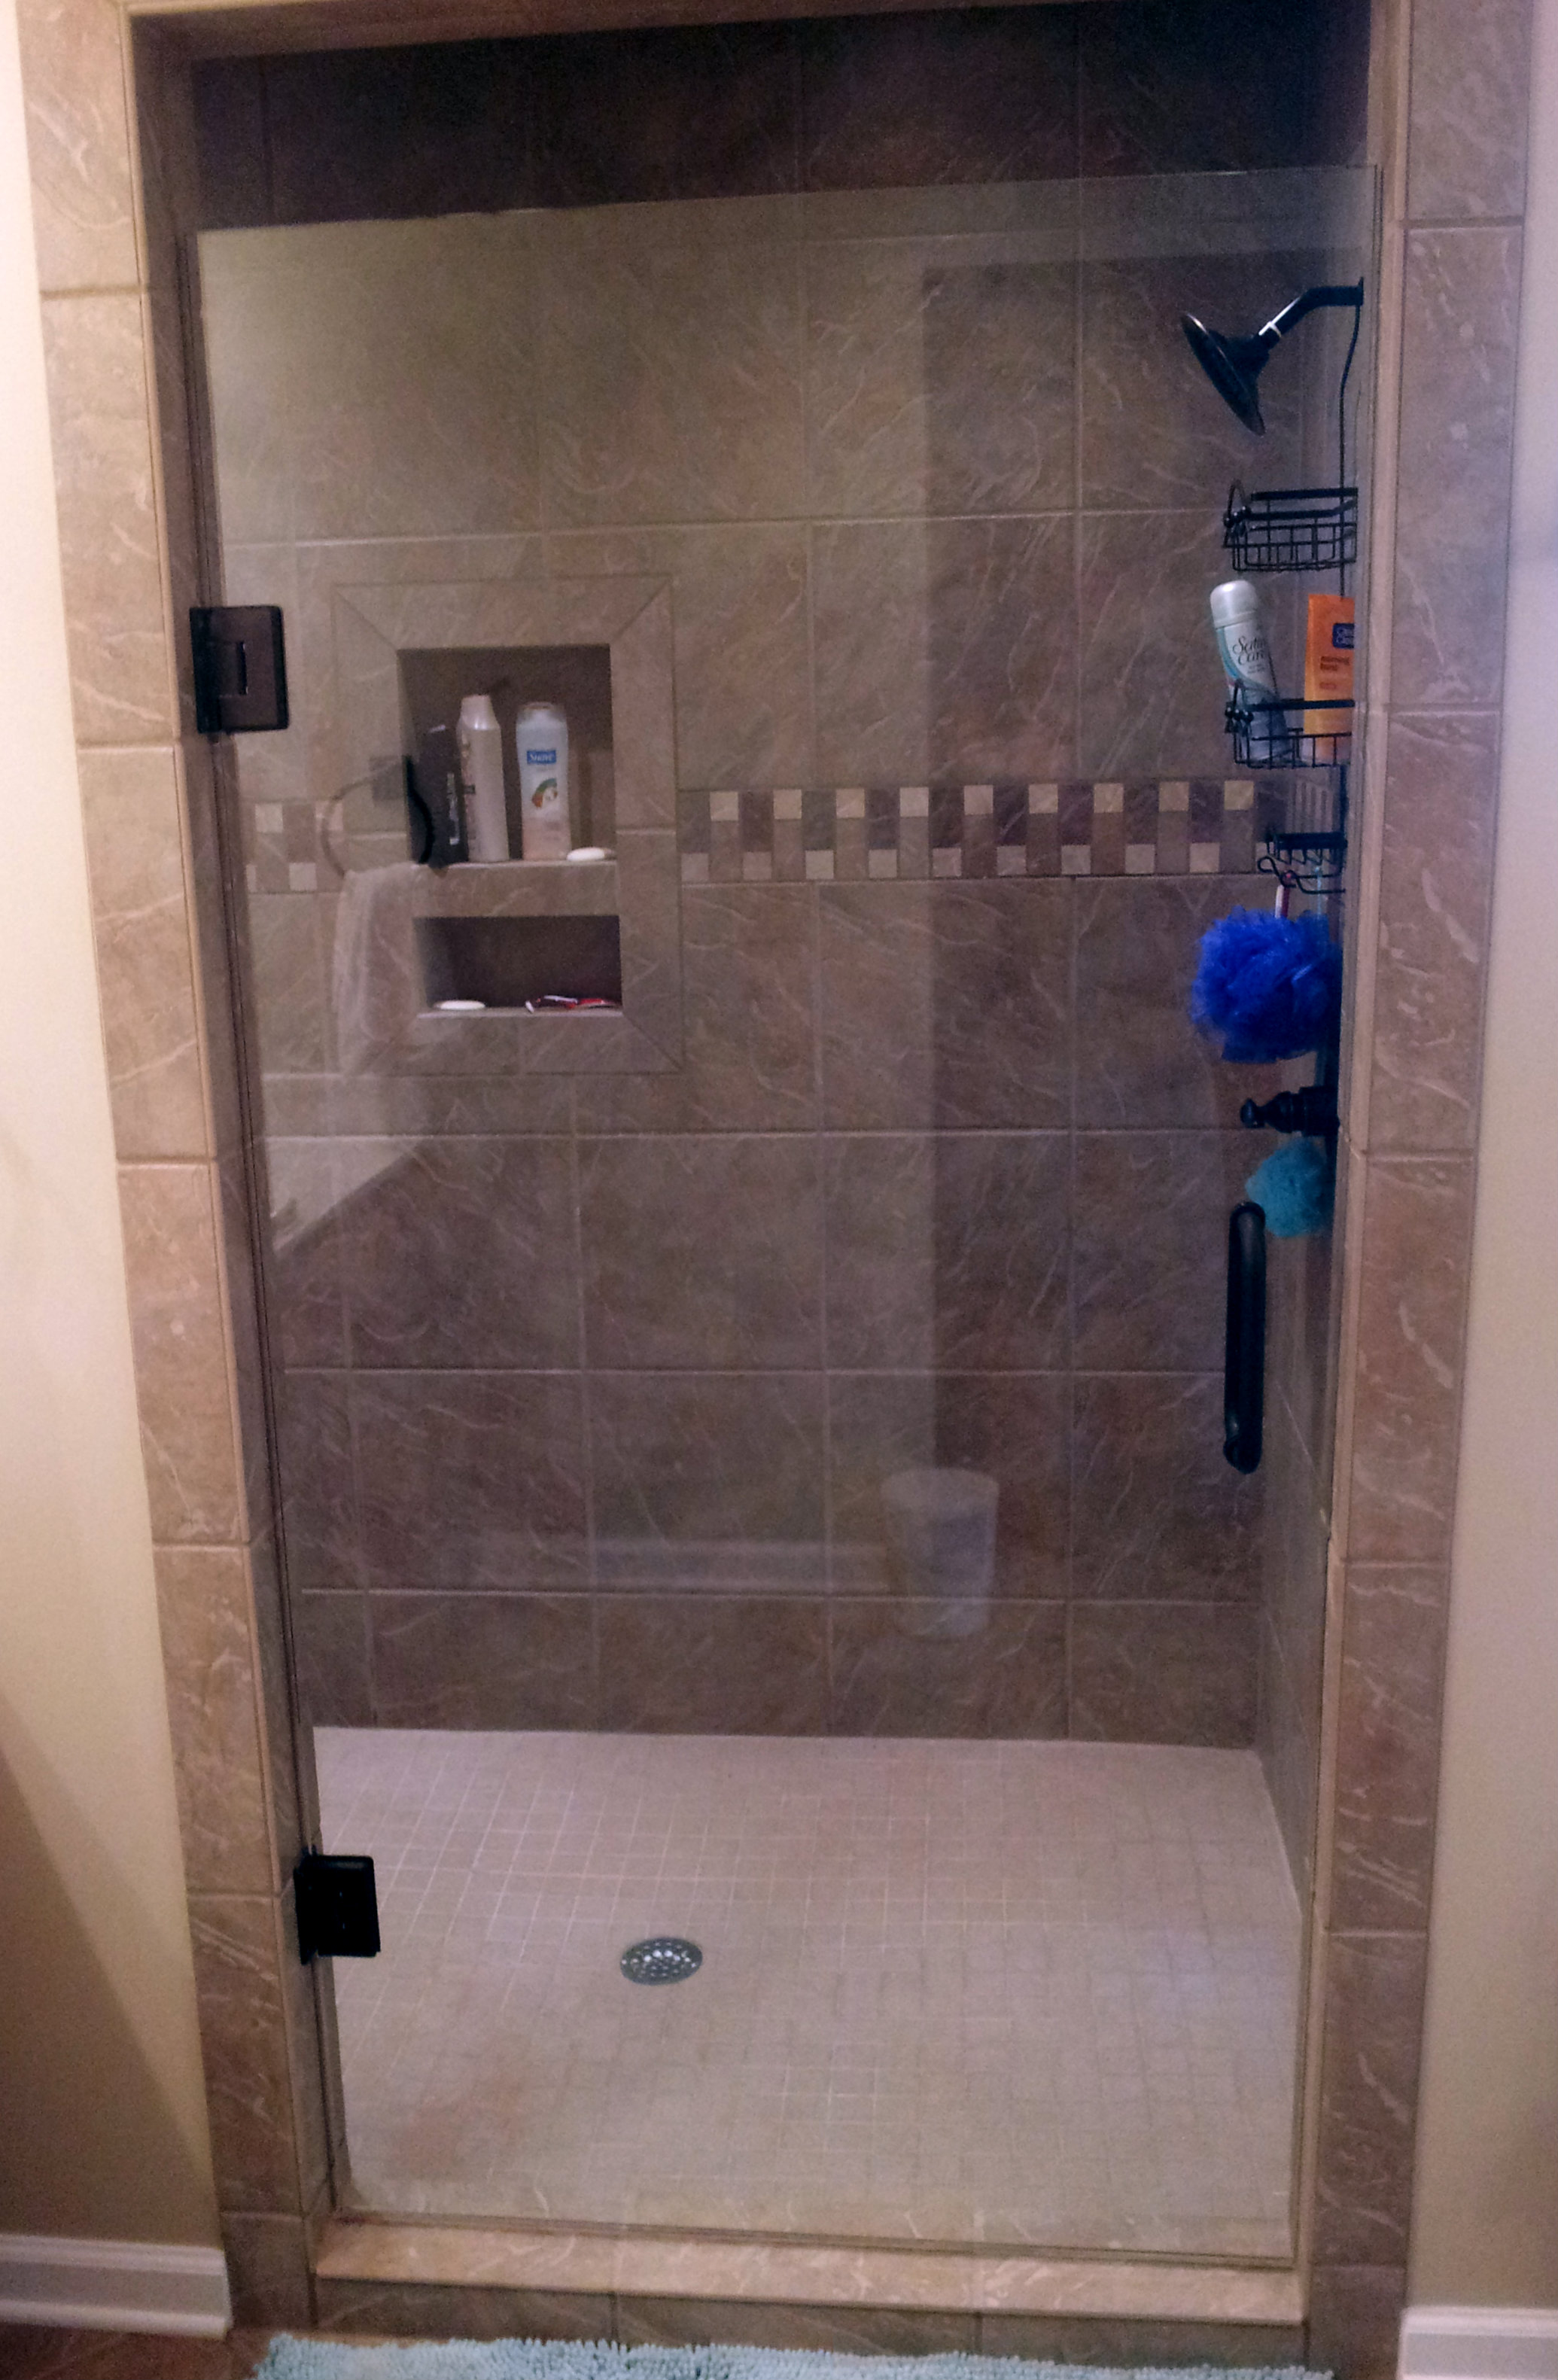 https://0201.nccdn.net/4_2/000/000/06b/a1b/Shower-door-frameless-.jpg